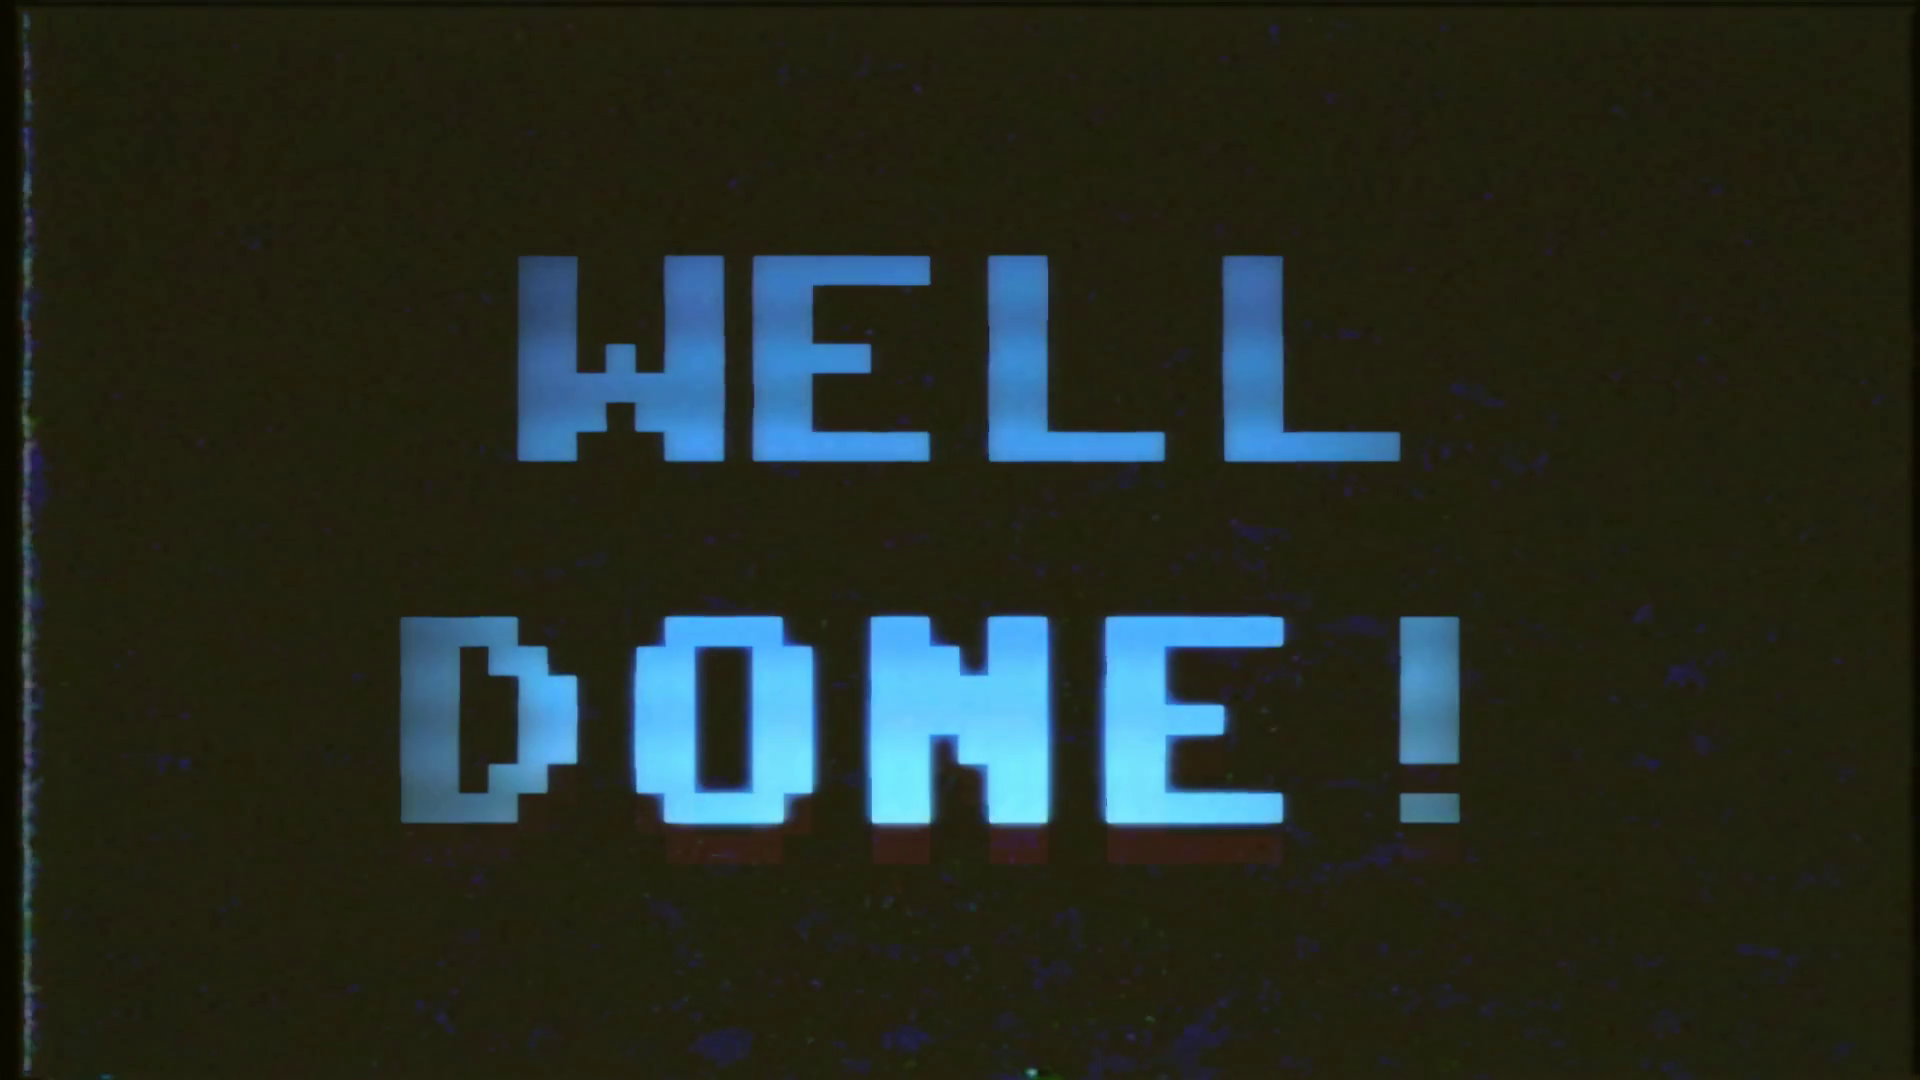 Videogame Well Done Vhs. A fake VHS videogame screen with the text Well done.  8 bit retro style. Stock Video Footage - VideoBlocks - Well Done PNG HD